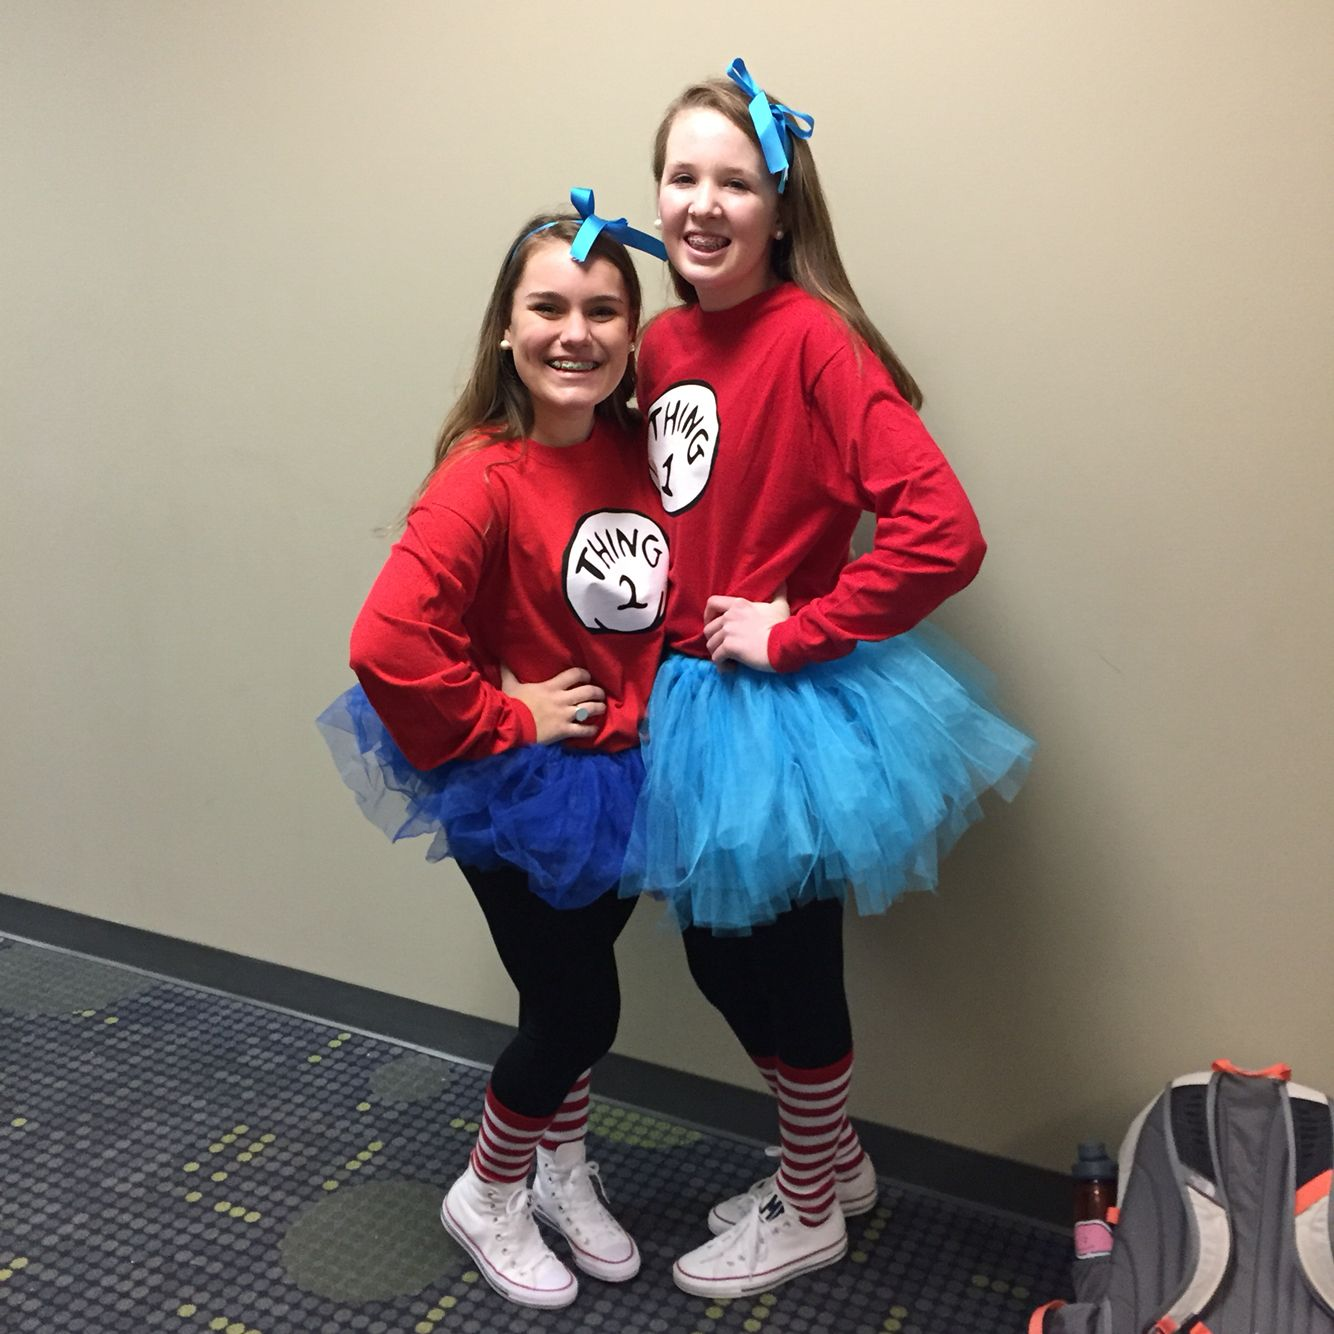 diy thing 1 and thing 2 costumes  71ad998e51e4